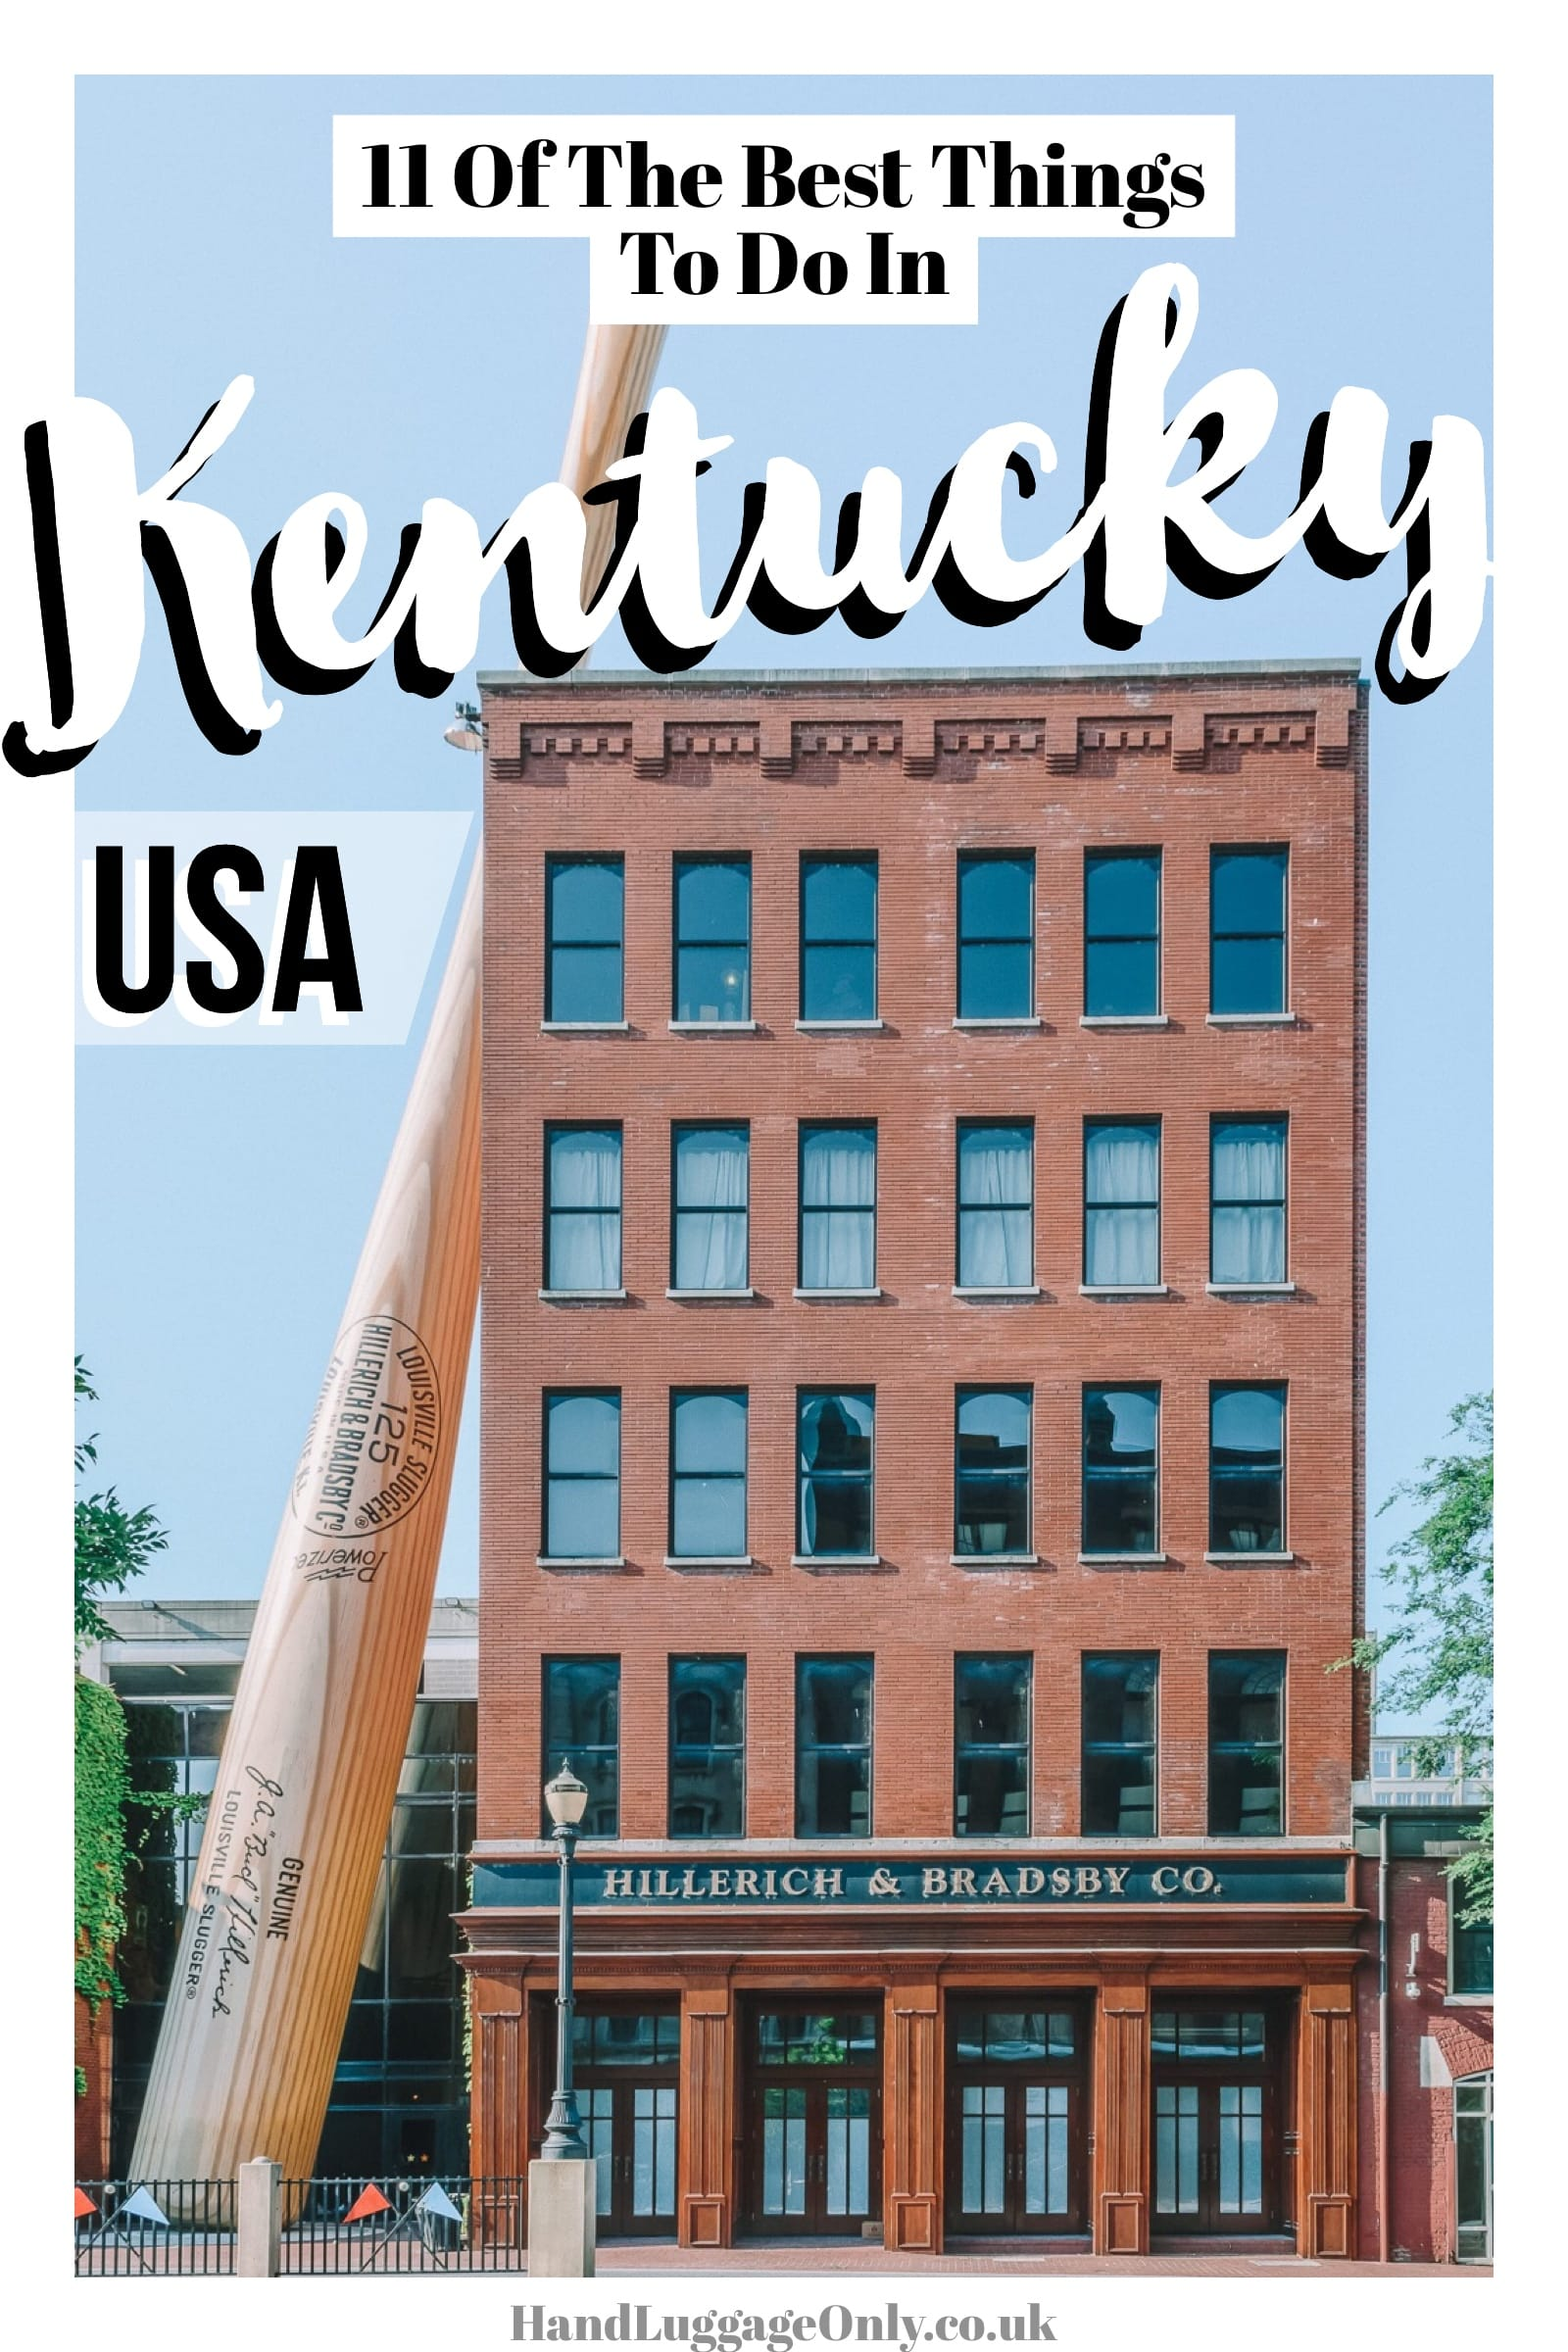 Best Things to Do in Kentucky (1)